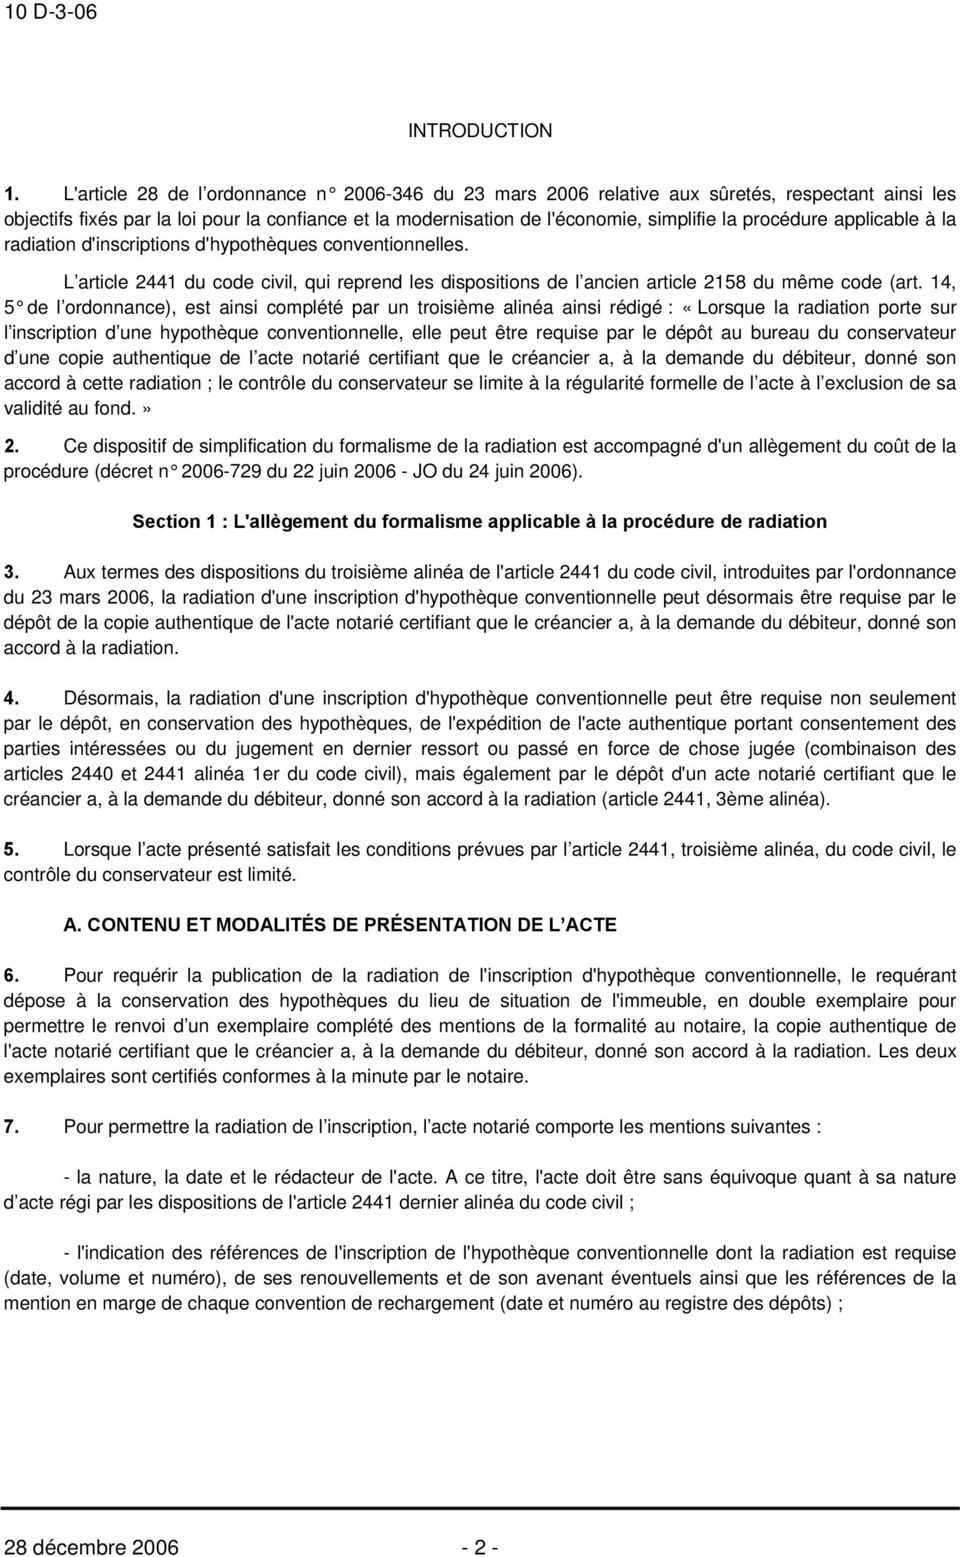 Bulletin Officiel Des Impots Pdf